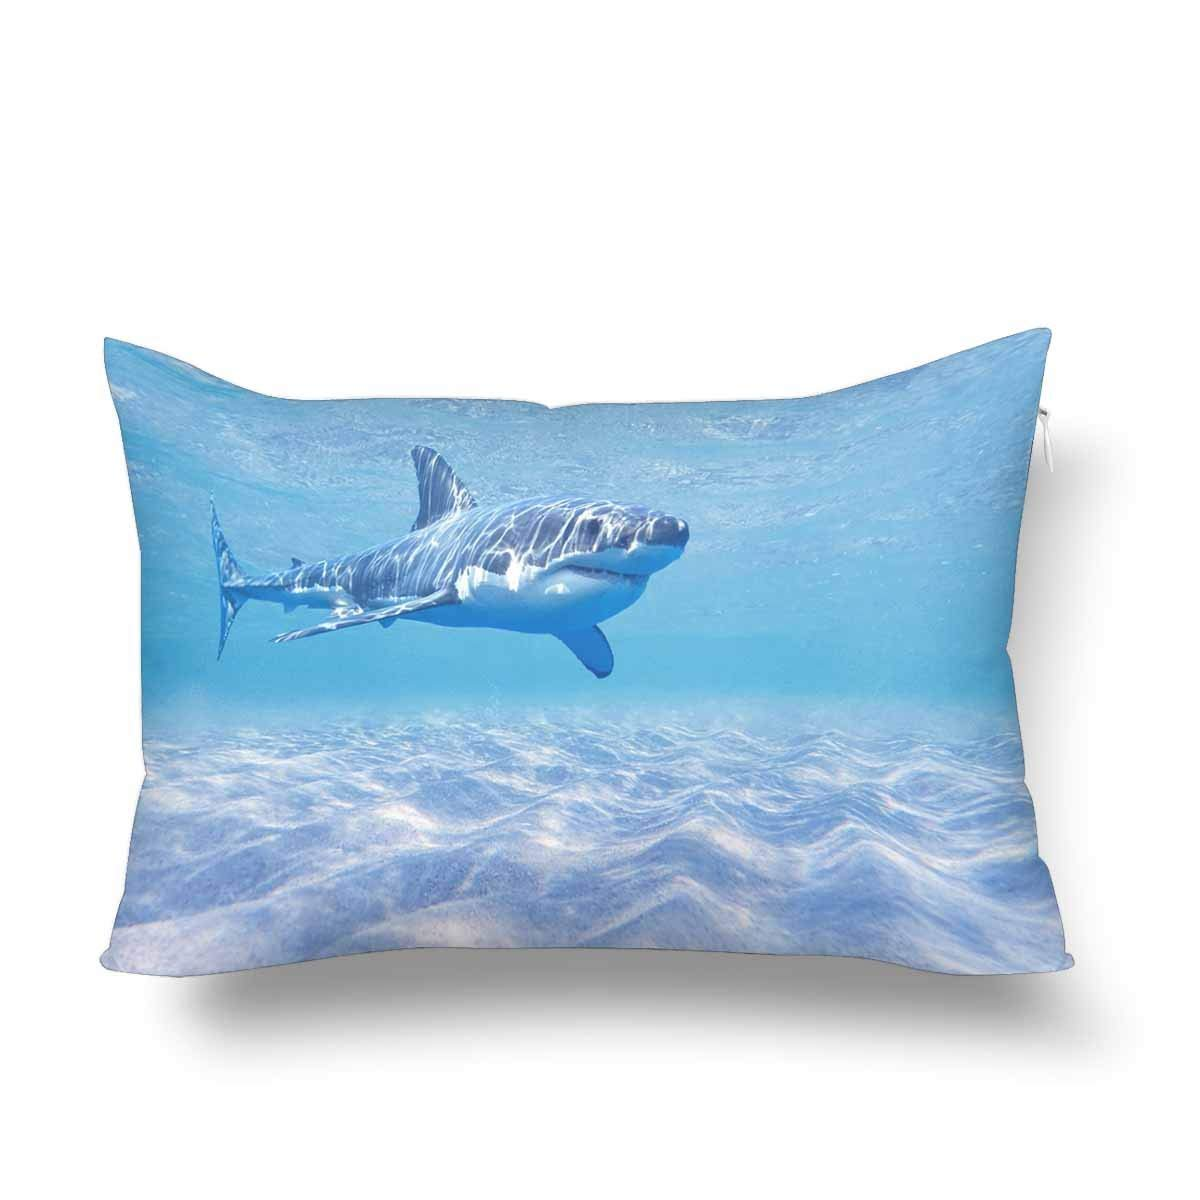 0a9852bfd953 GCKG Great White Shark Swimming Underwater Ocean Summer Pillow Cases  Pillowcase 20x30 inches